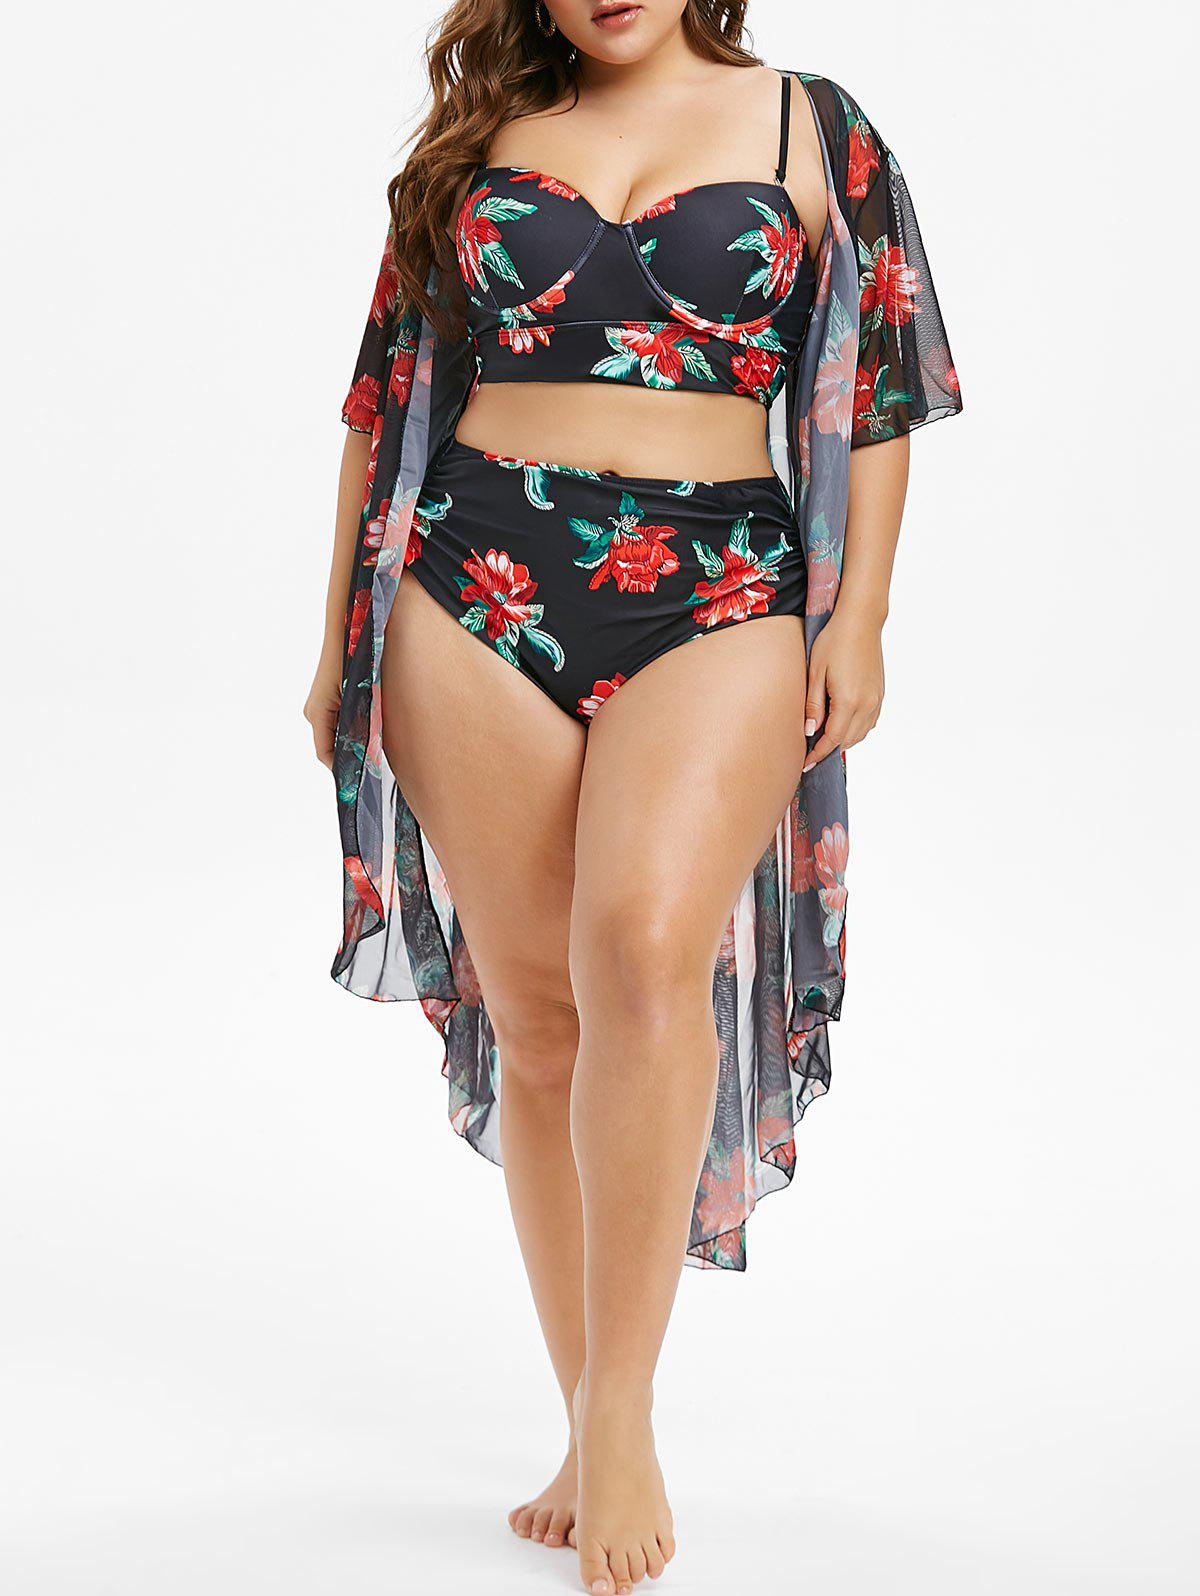 Plus Size Floral Print Underwire Tankini Swimwear With Cover Up - BLACK 4X